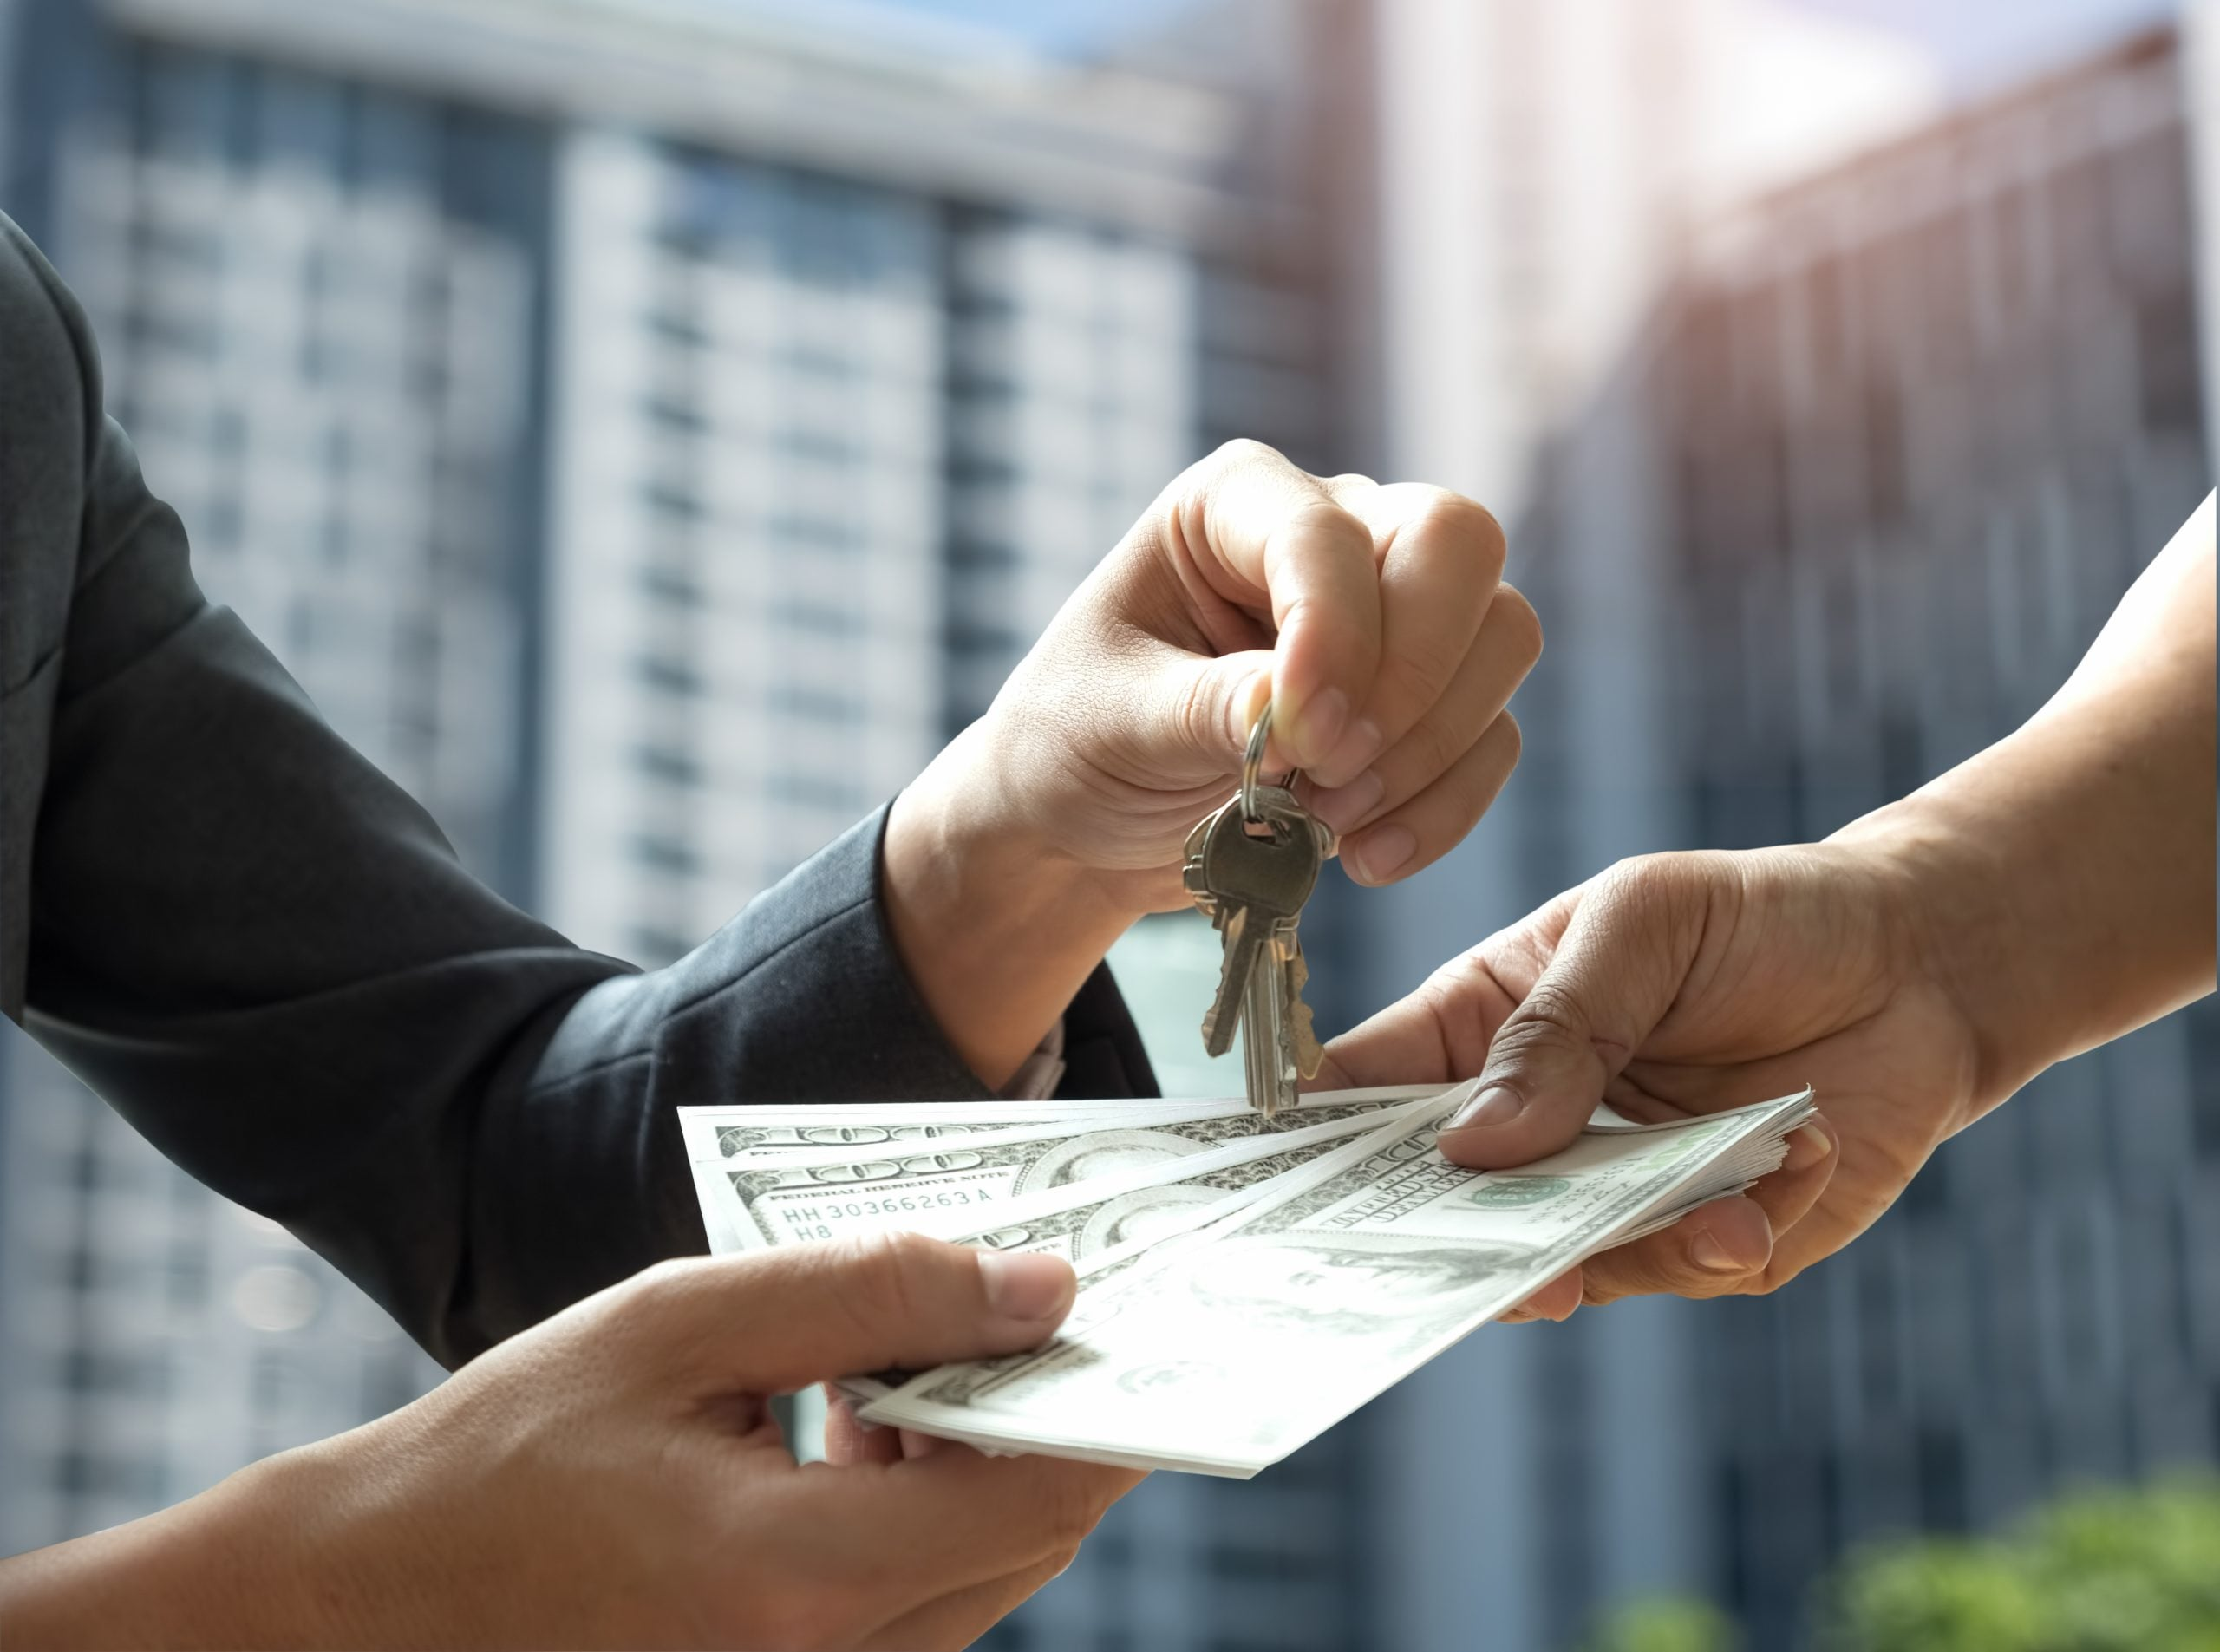 Real estate trading,Hand people are paying the dollar with other